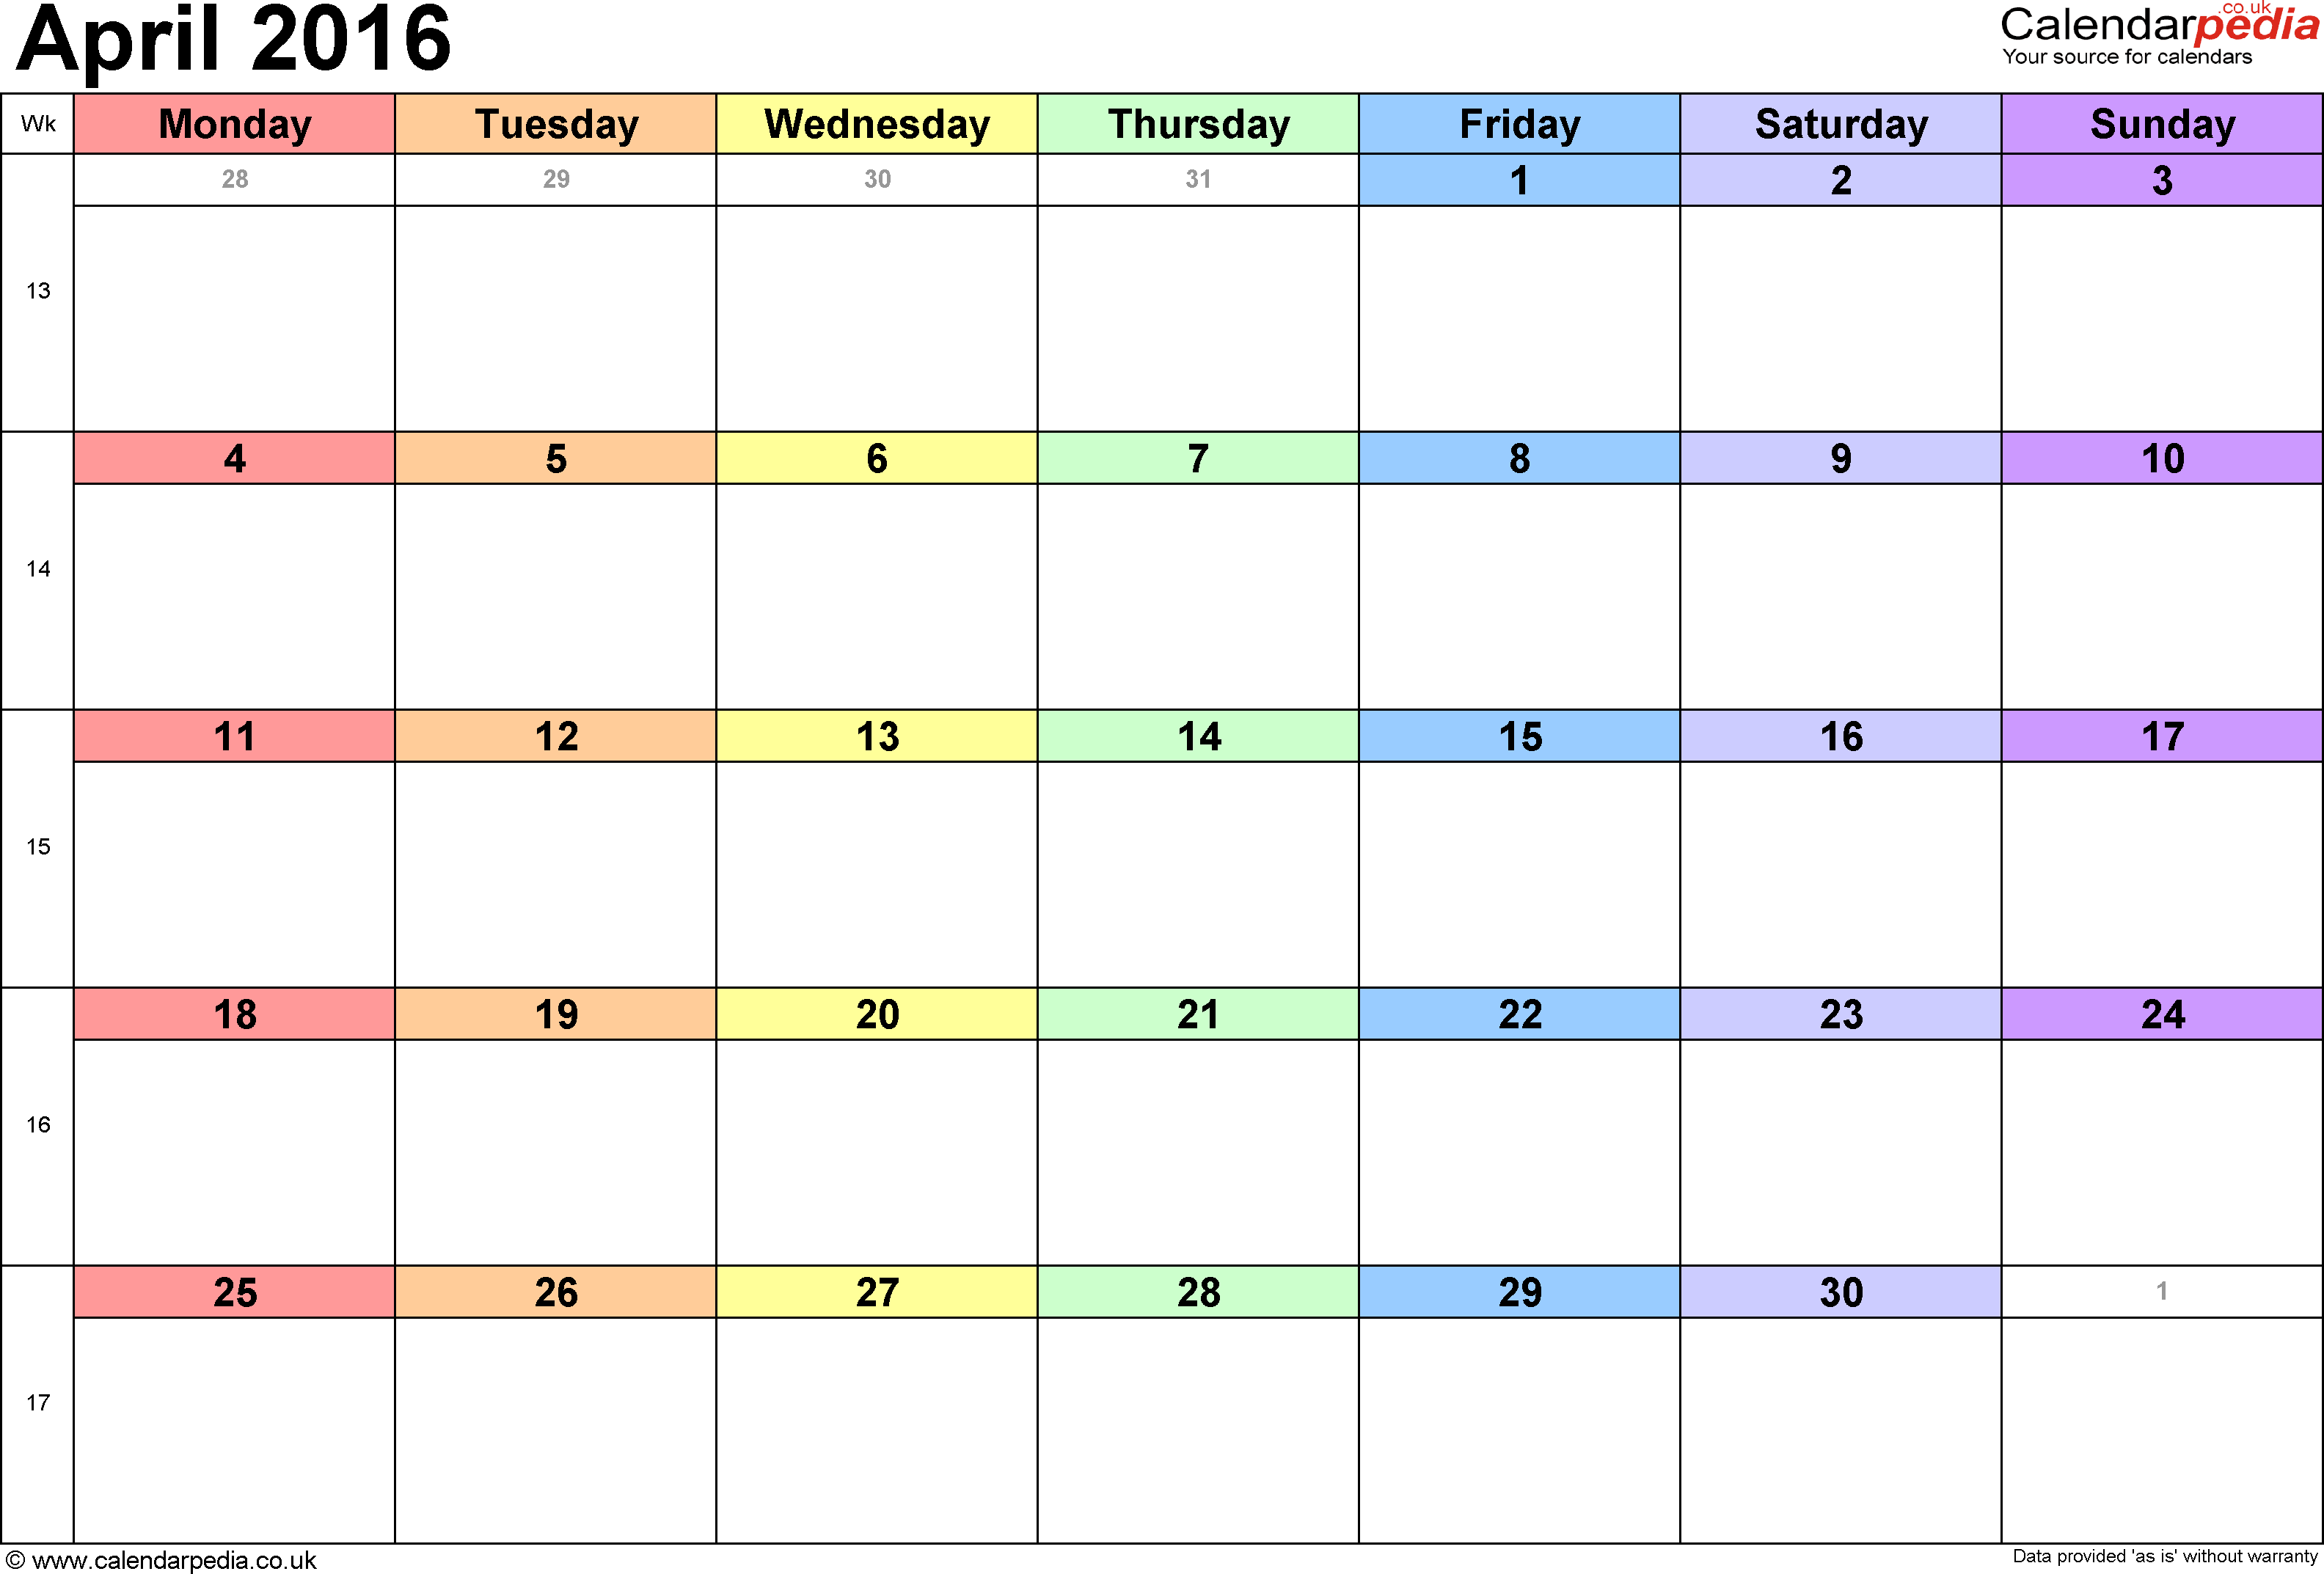 Calendar April 2016 UK, Bank Holidays, Excel/PDF/Word Templates